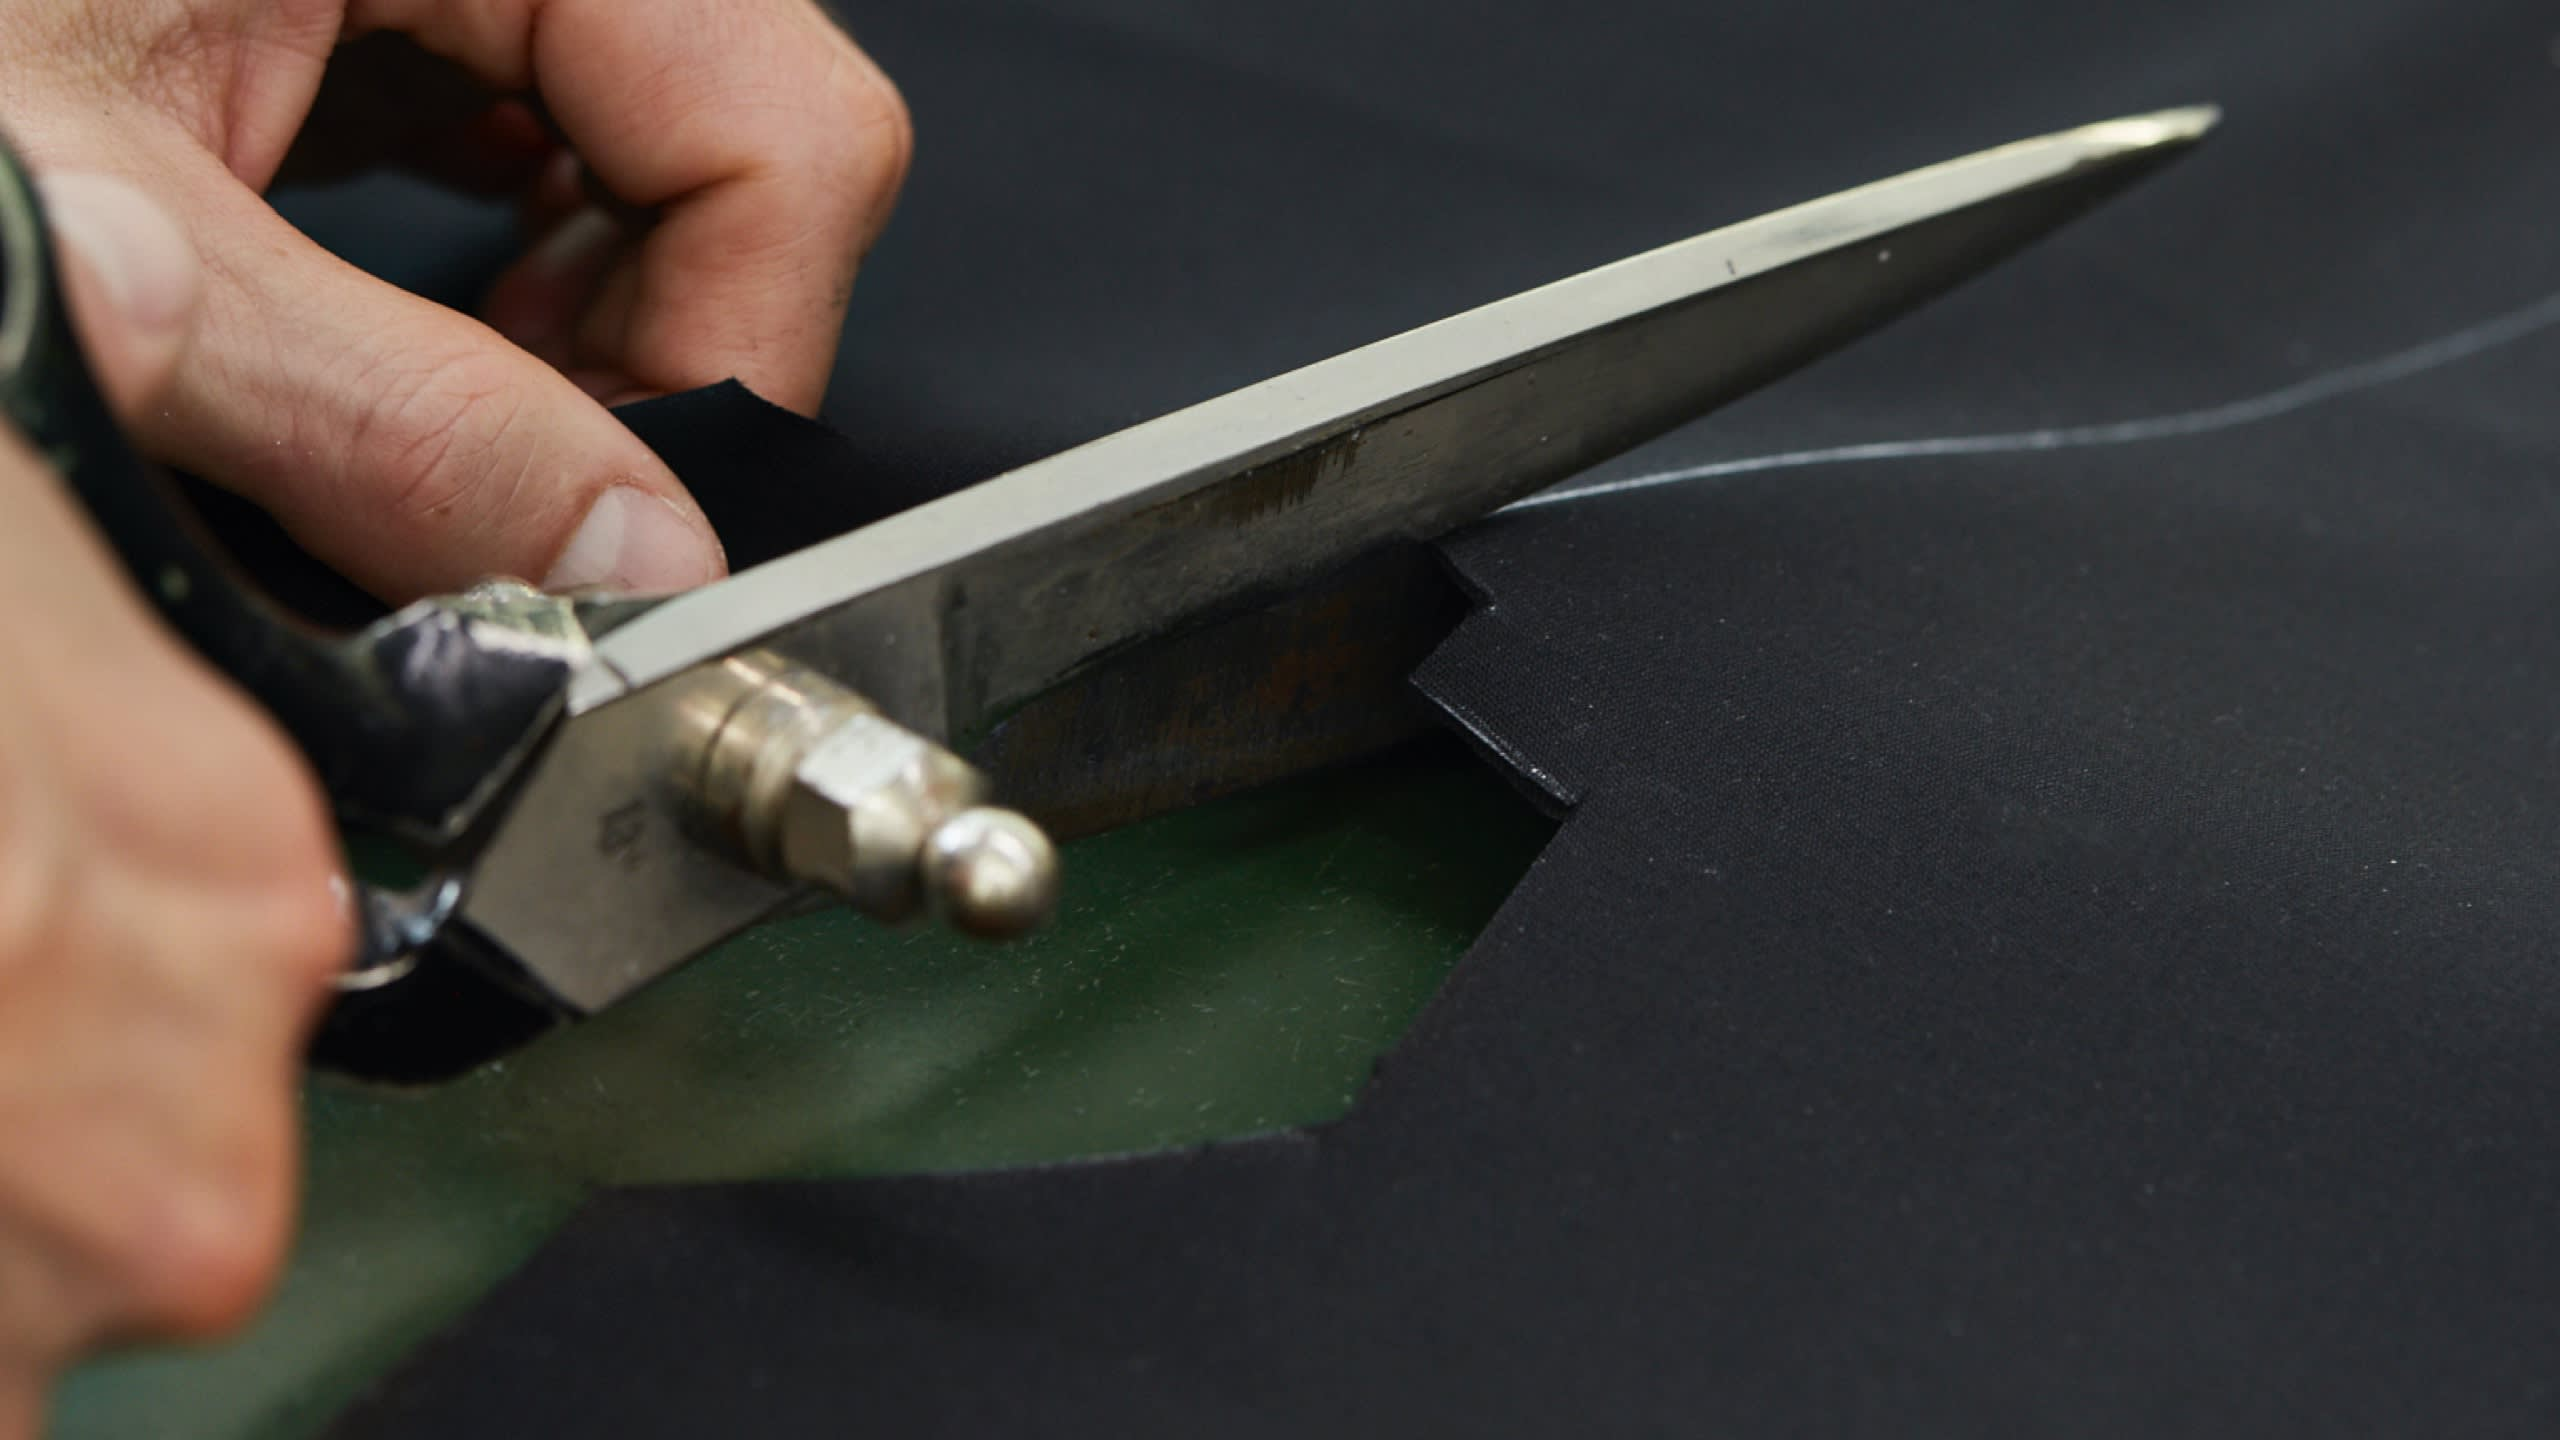 A Brioni artisan cutting a fabric